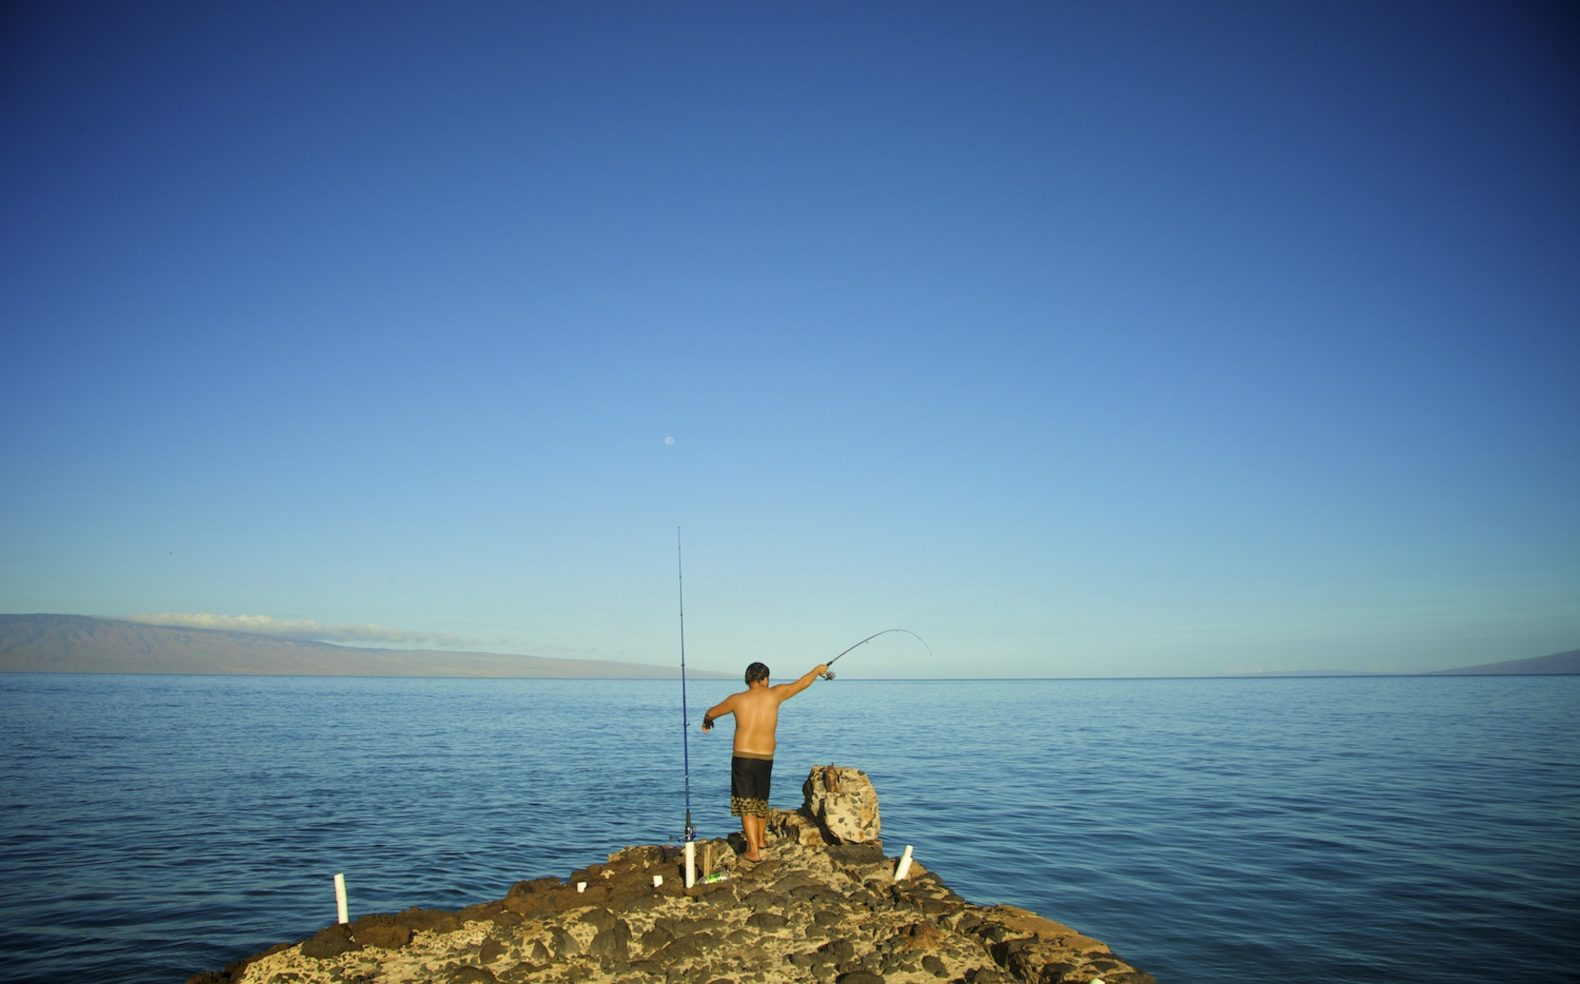 Professional travel photograph of a boy fishing from a rock surrounded by an expansive water view and distant mountains.